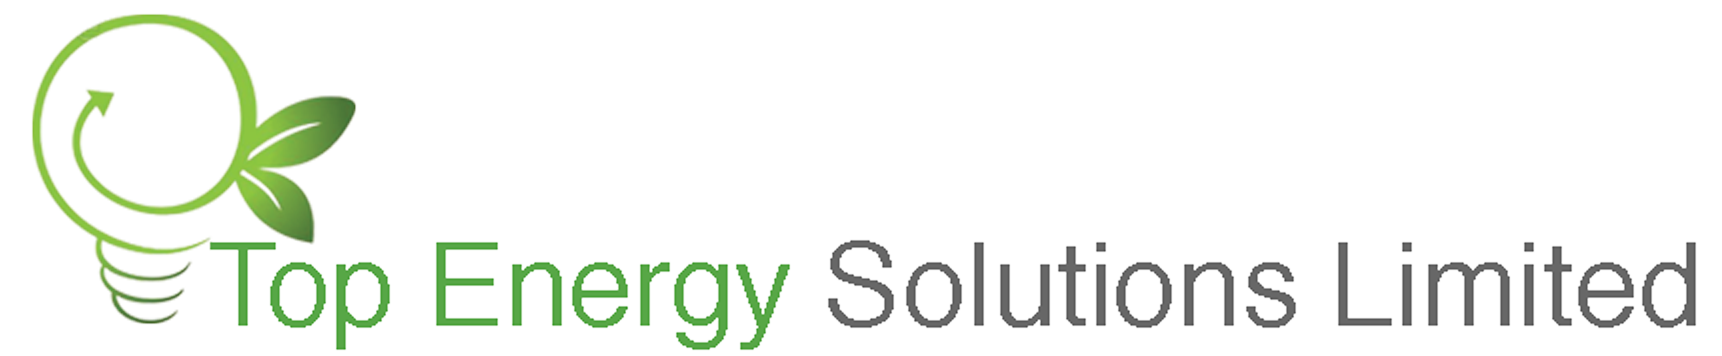 Top Energy Solutions